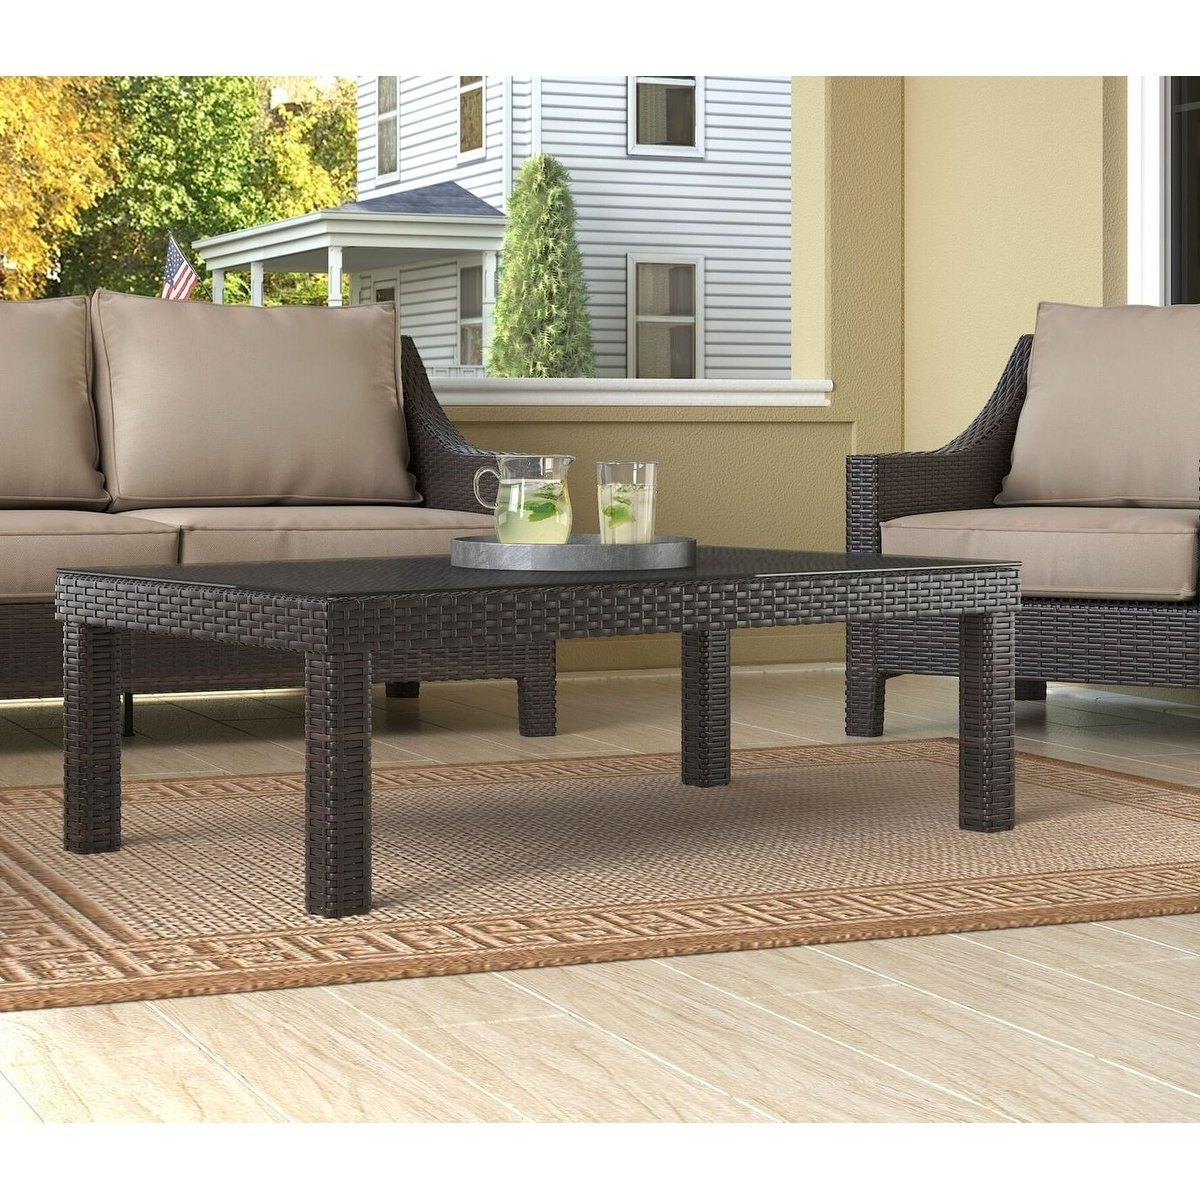 Well Liked Shop Serta Tahoe Outdoor Coffee Table, Terra Brown Wicker – Free With Regard To Tahoe Ii Cocktail Tables (Gallery 14 of 20)